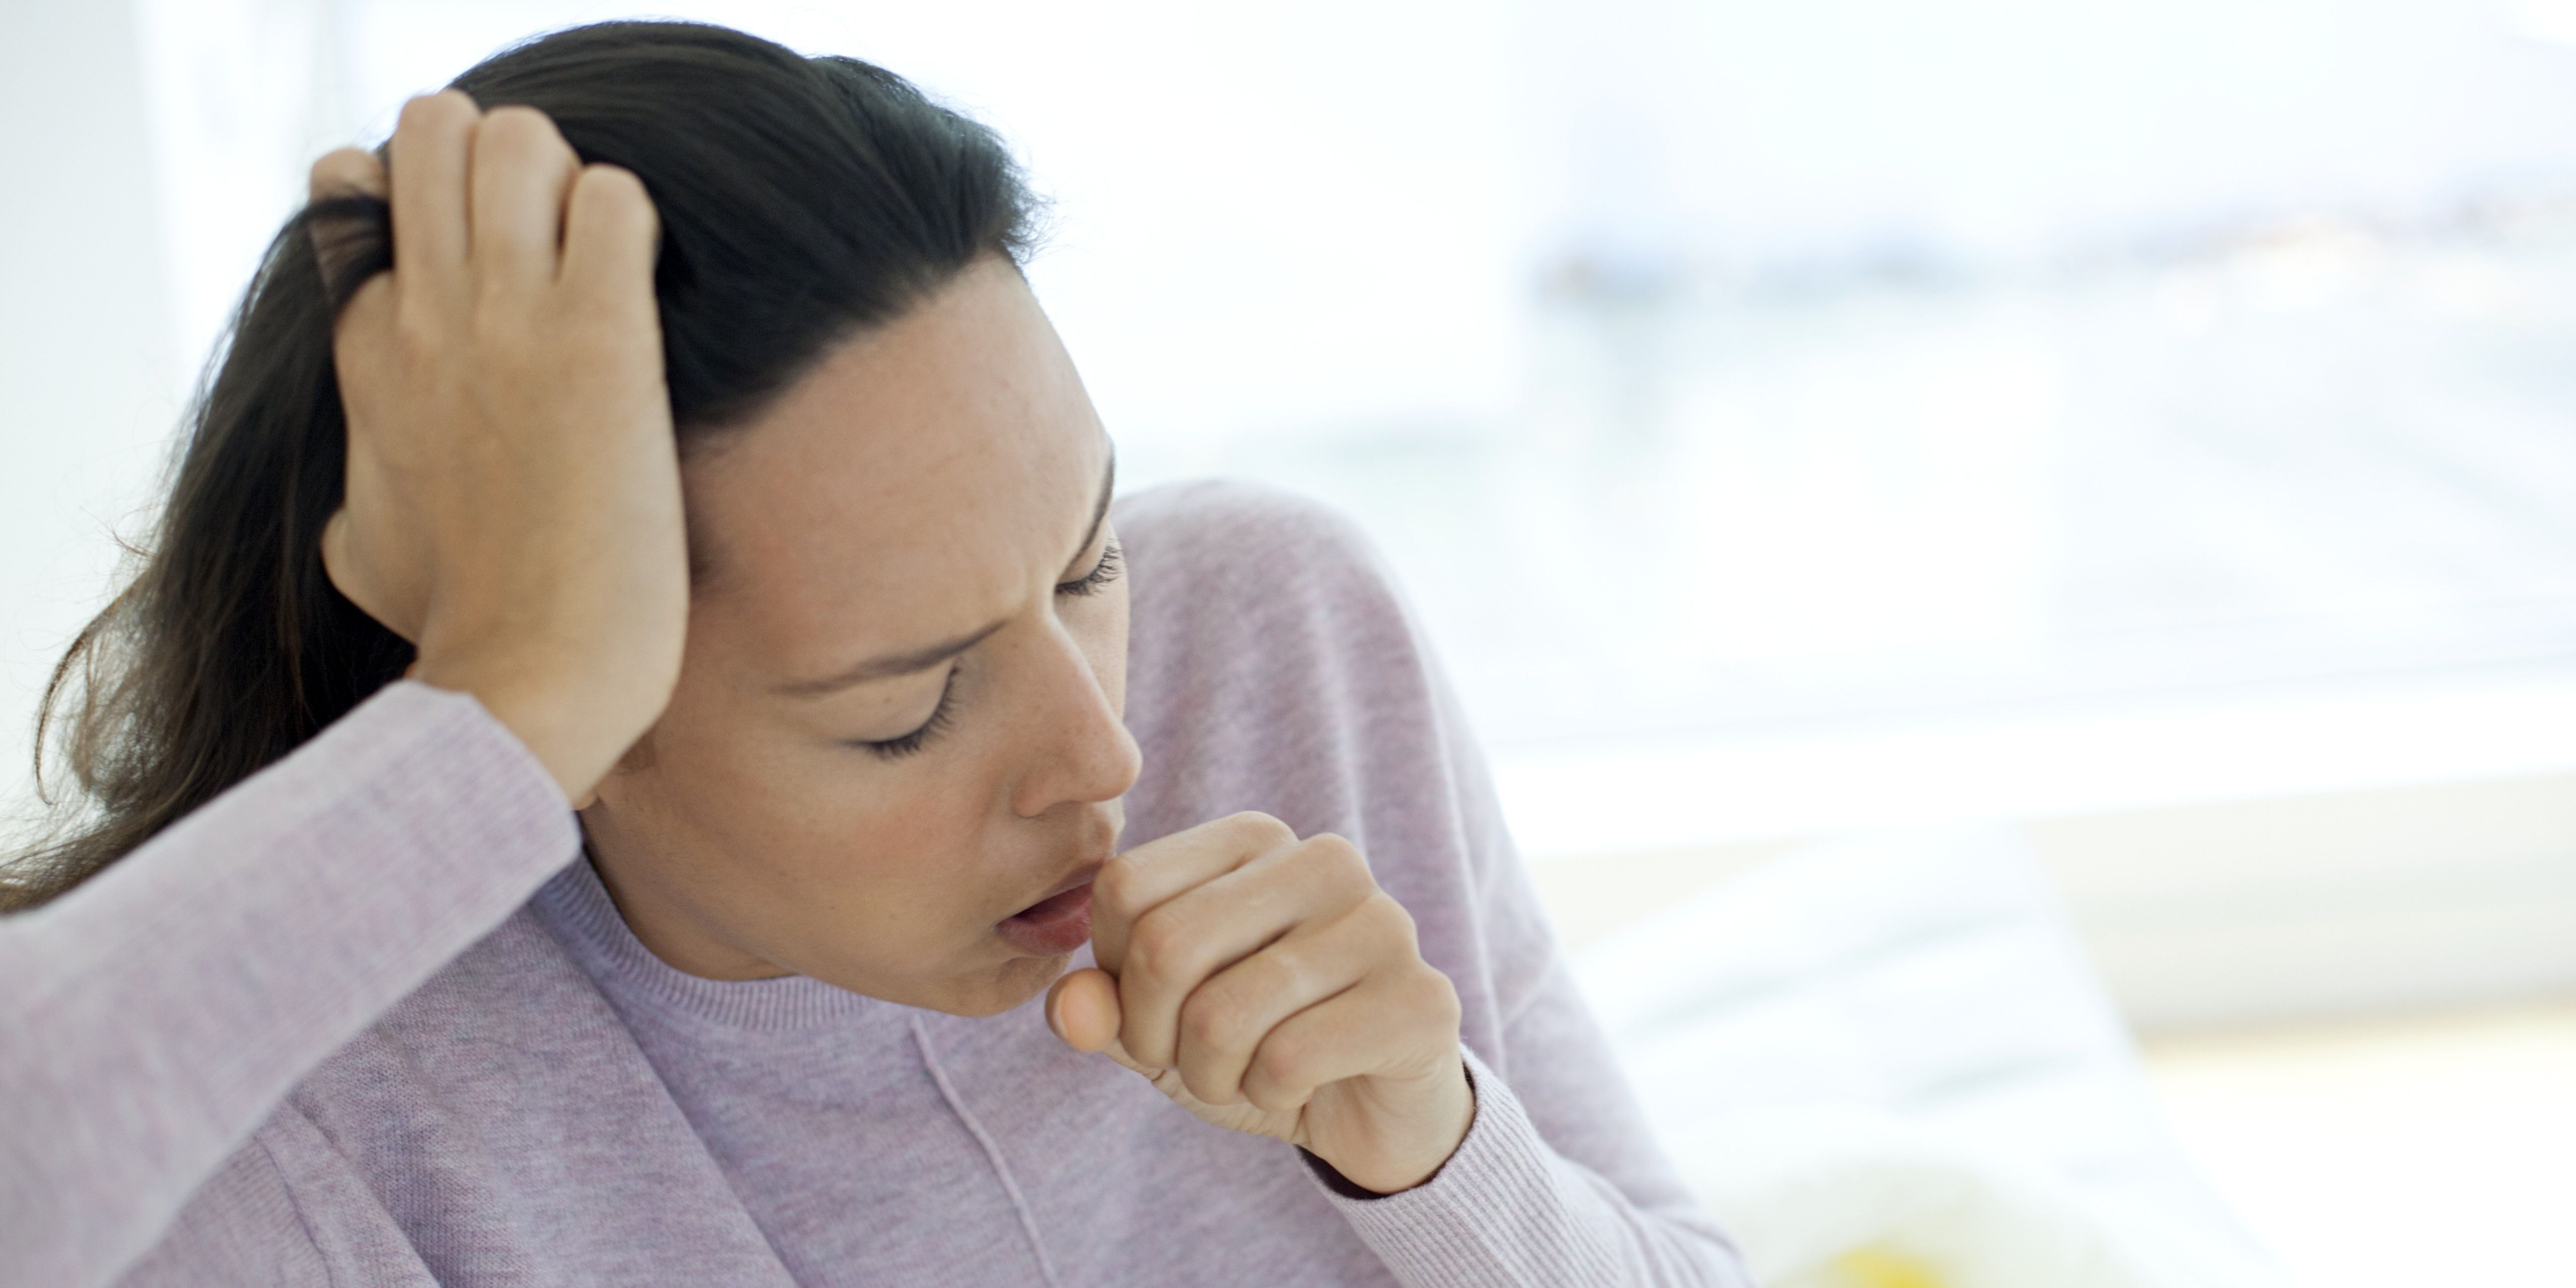 Young woman coughing, common stages of a cold